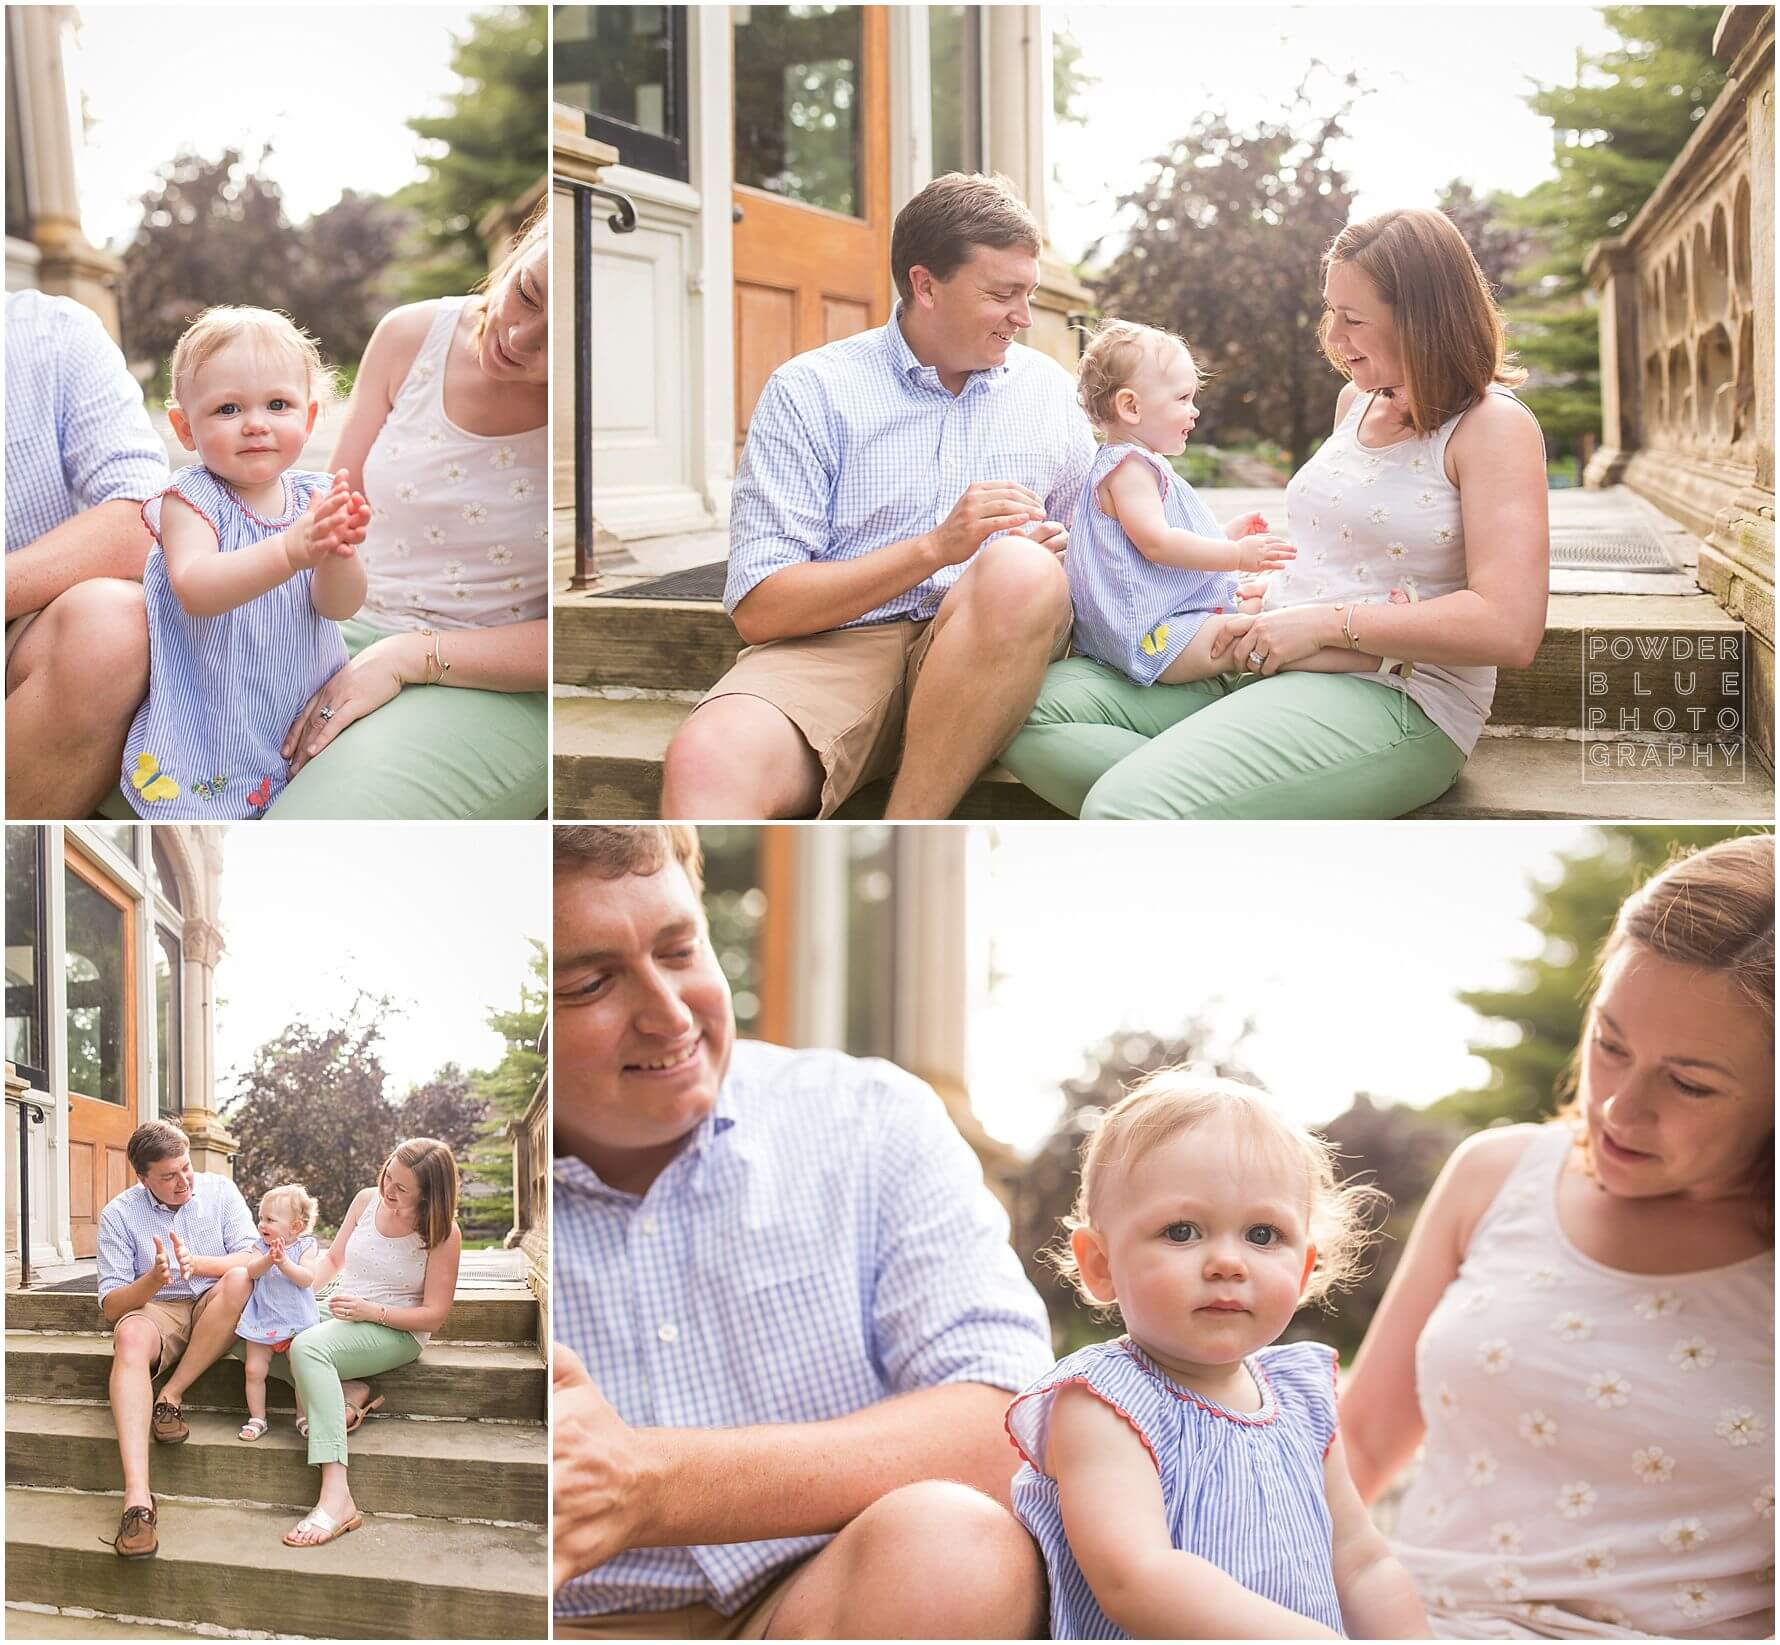 pittsburgh family photography session at frick art and historical center in pittsburgh, pa.  12 month old baby girl and family.